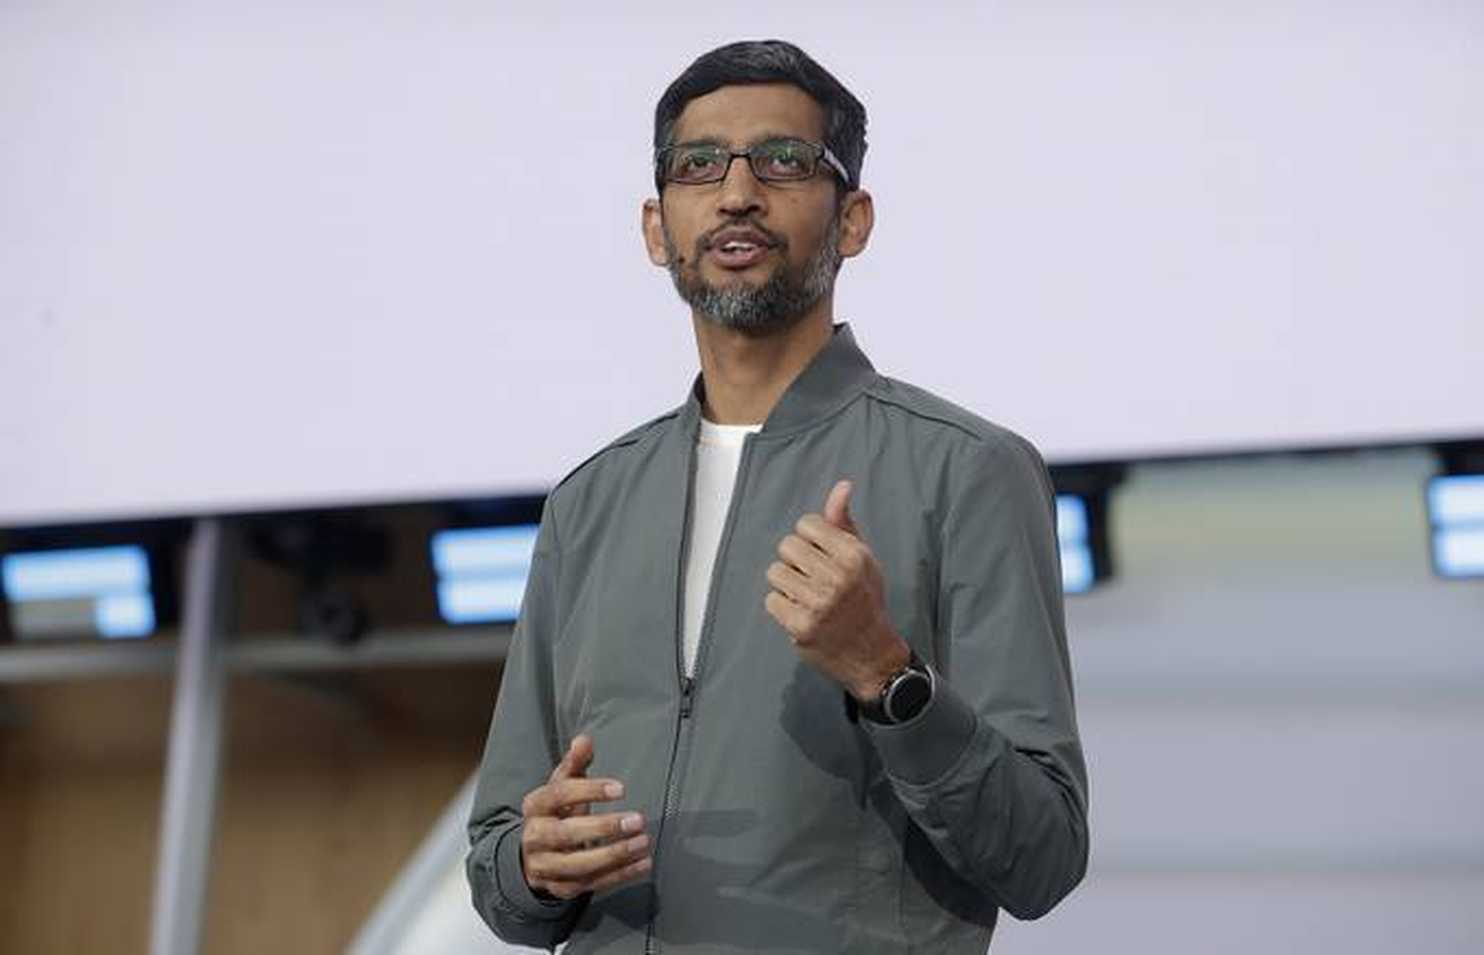 The Technology 202: Google earnings signal a tale of two tech industries